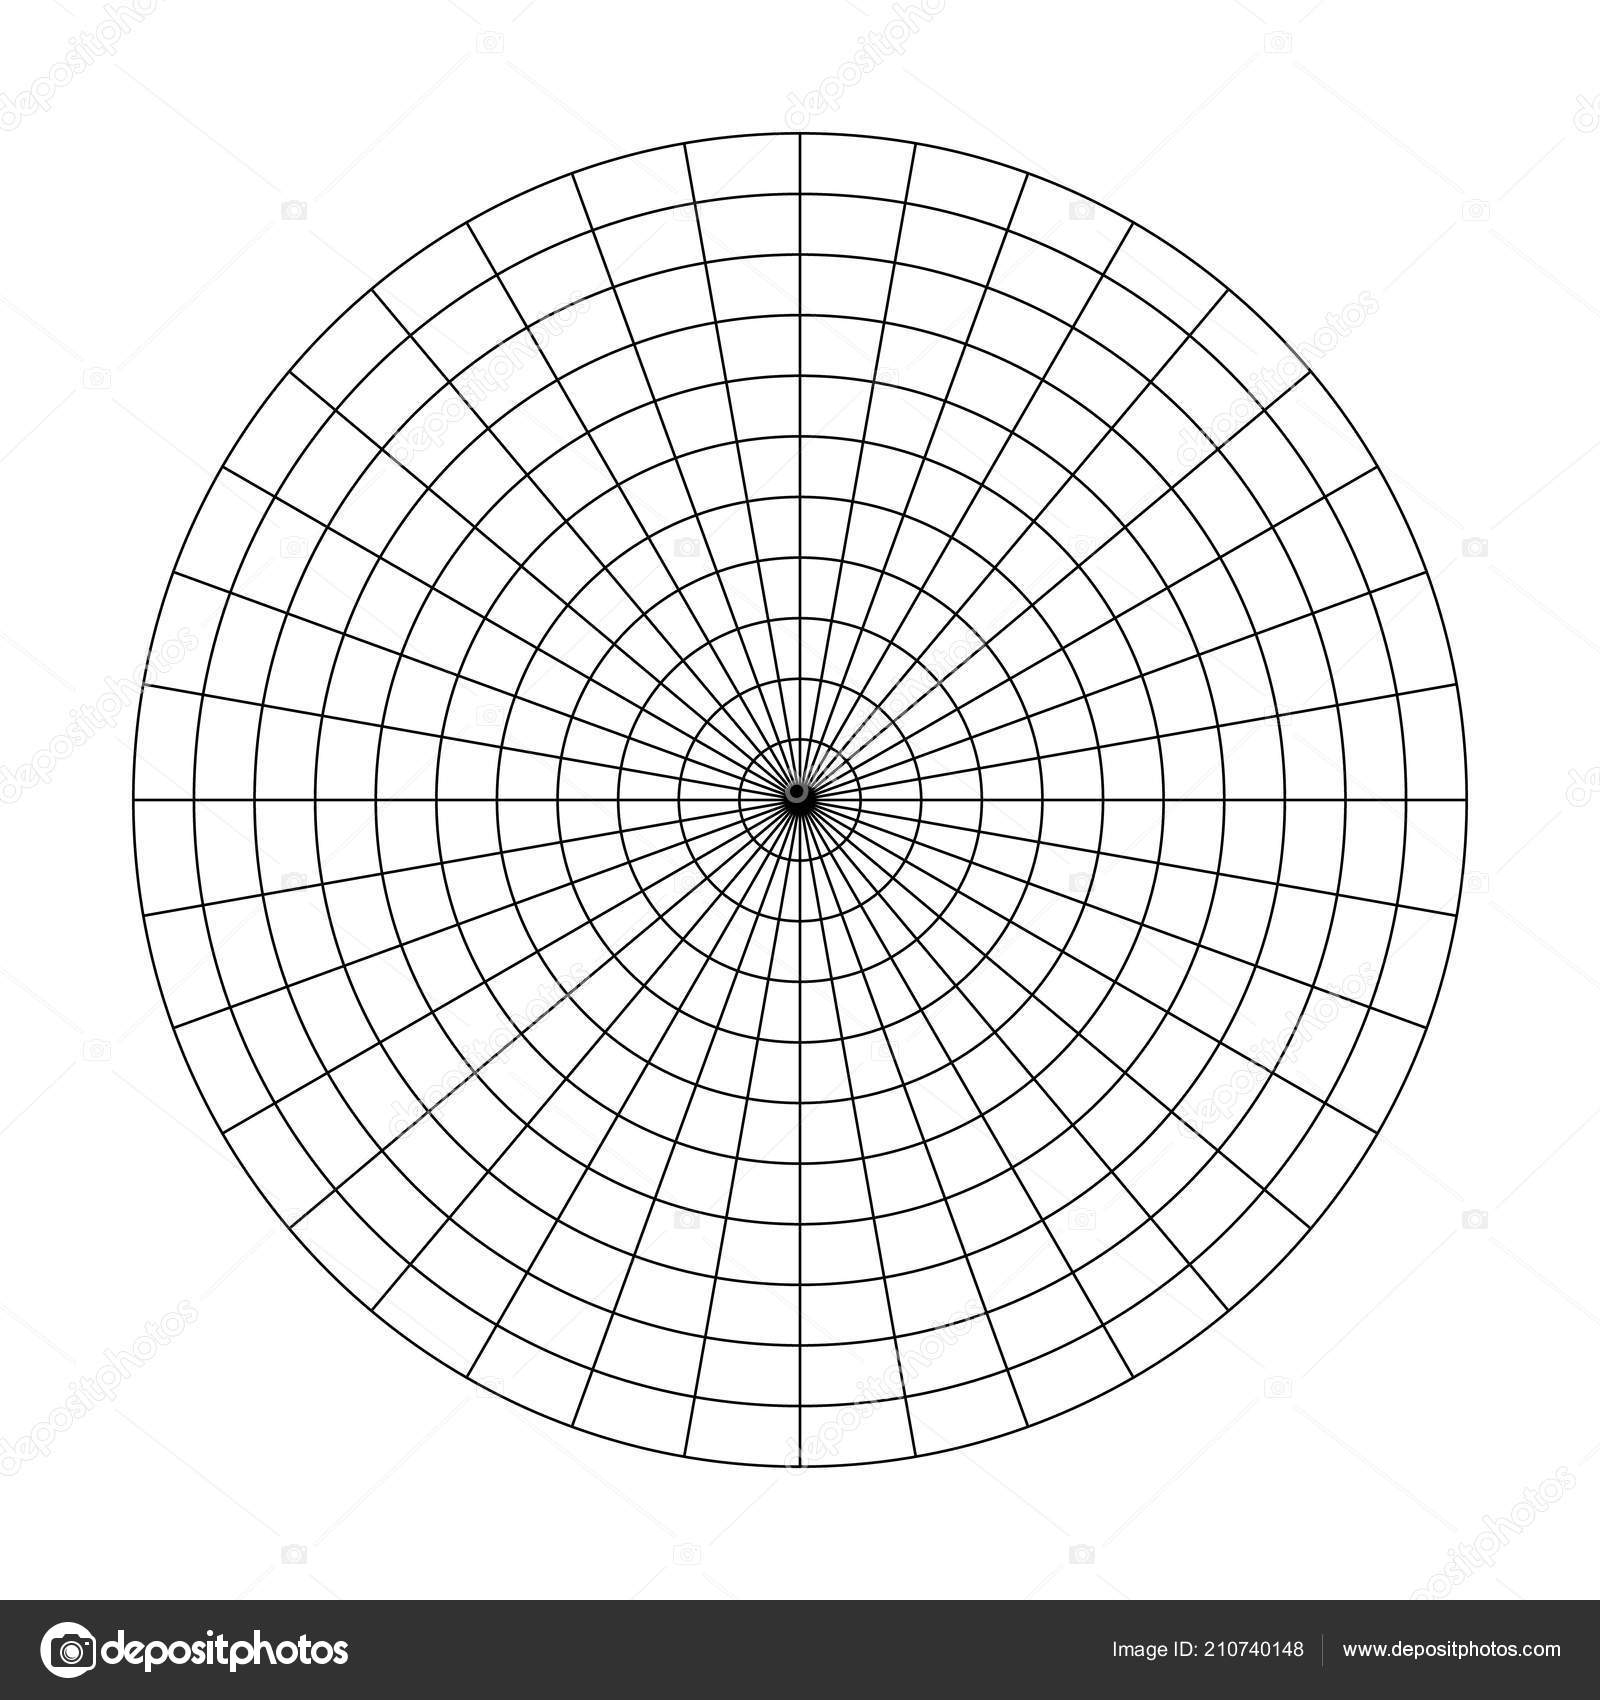 Polar grid of 10 concentric circles and 10 degrees steps blank polar grid of 10 concentric circles and 10 degrees steps blank vector polar graph paper ccuart Gallery